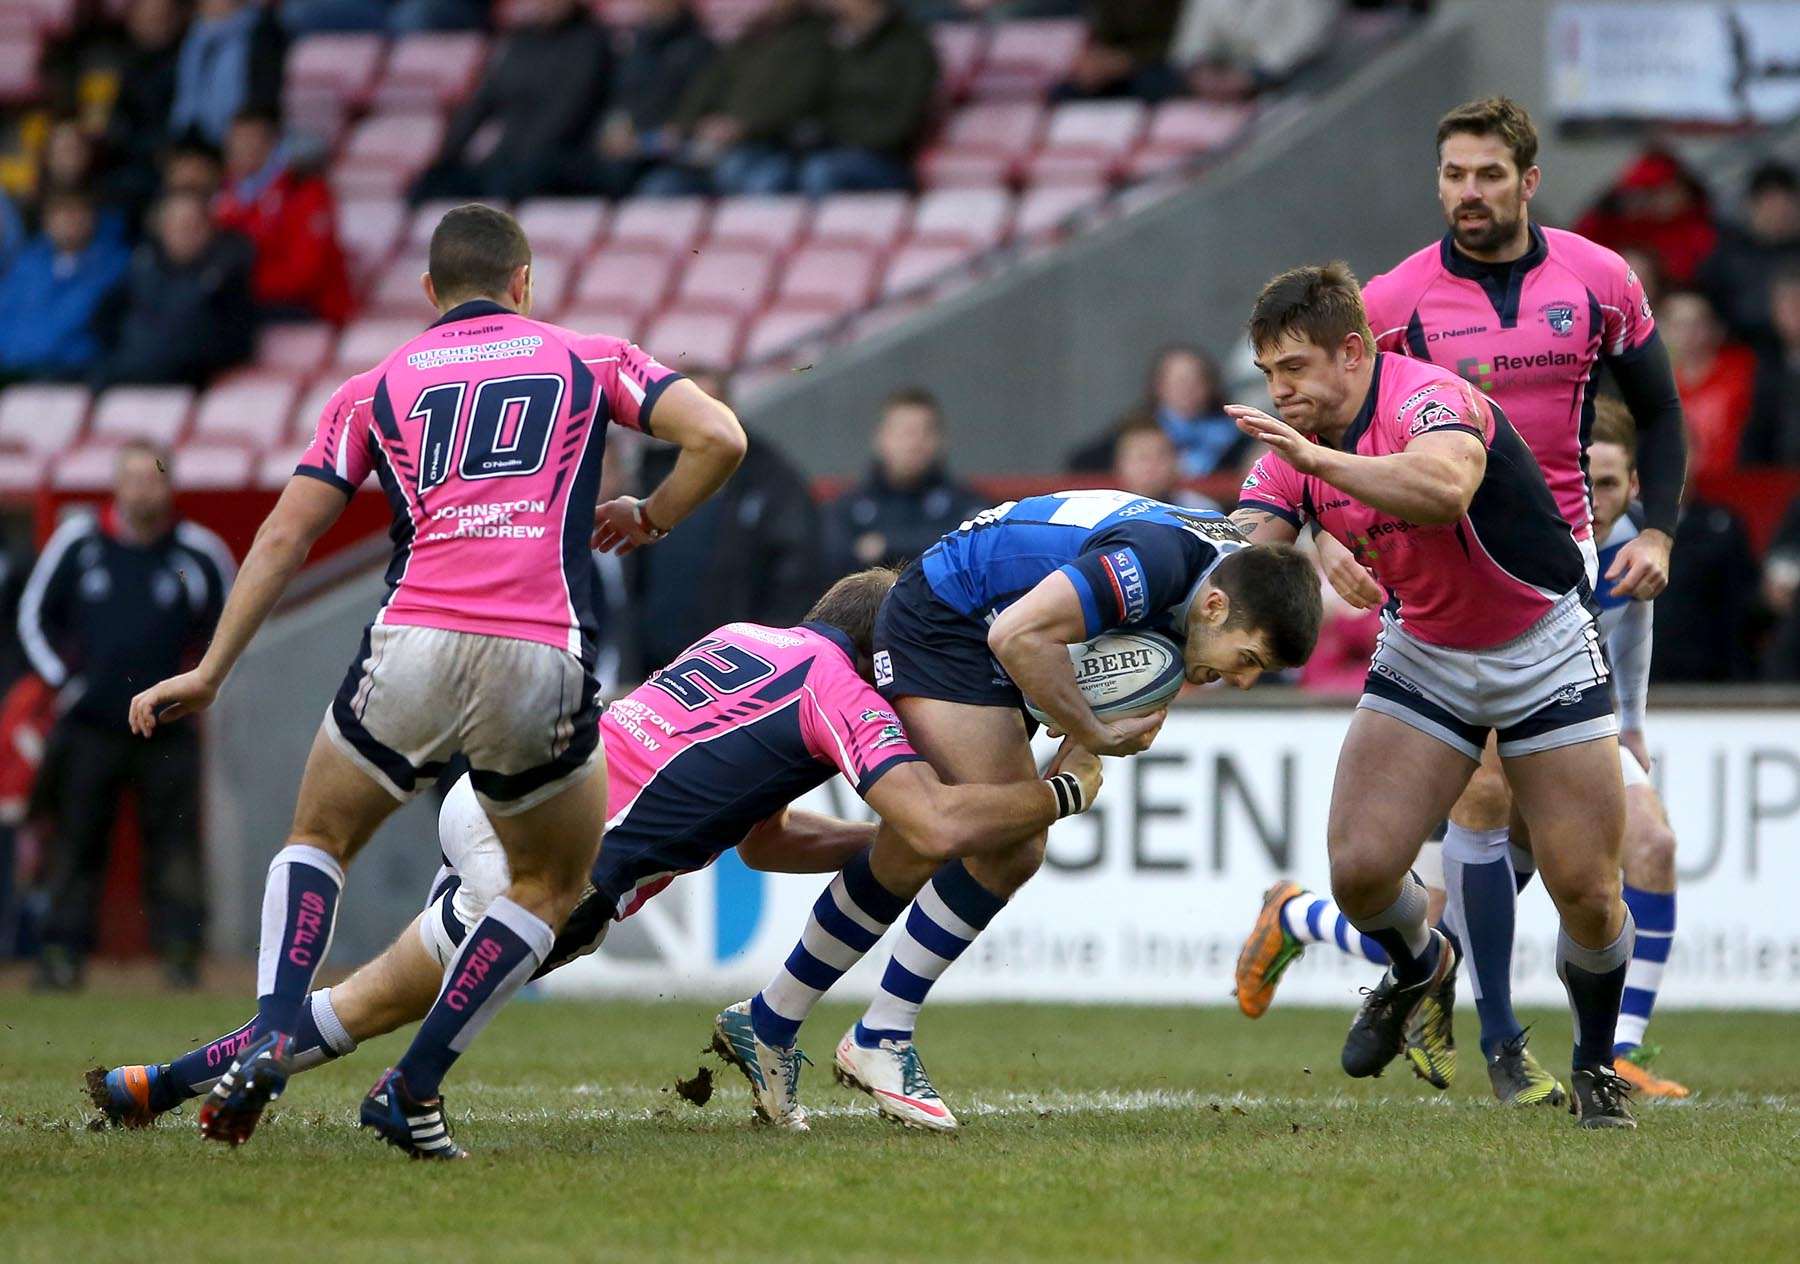 BIG PUSH: Henry Robinson on the attack for Mowden Park against Stourbridge on Saturday